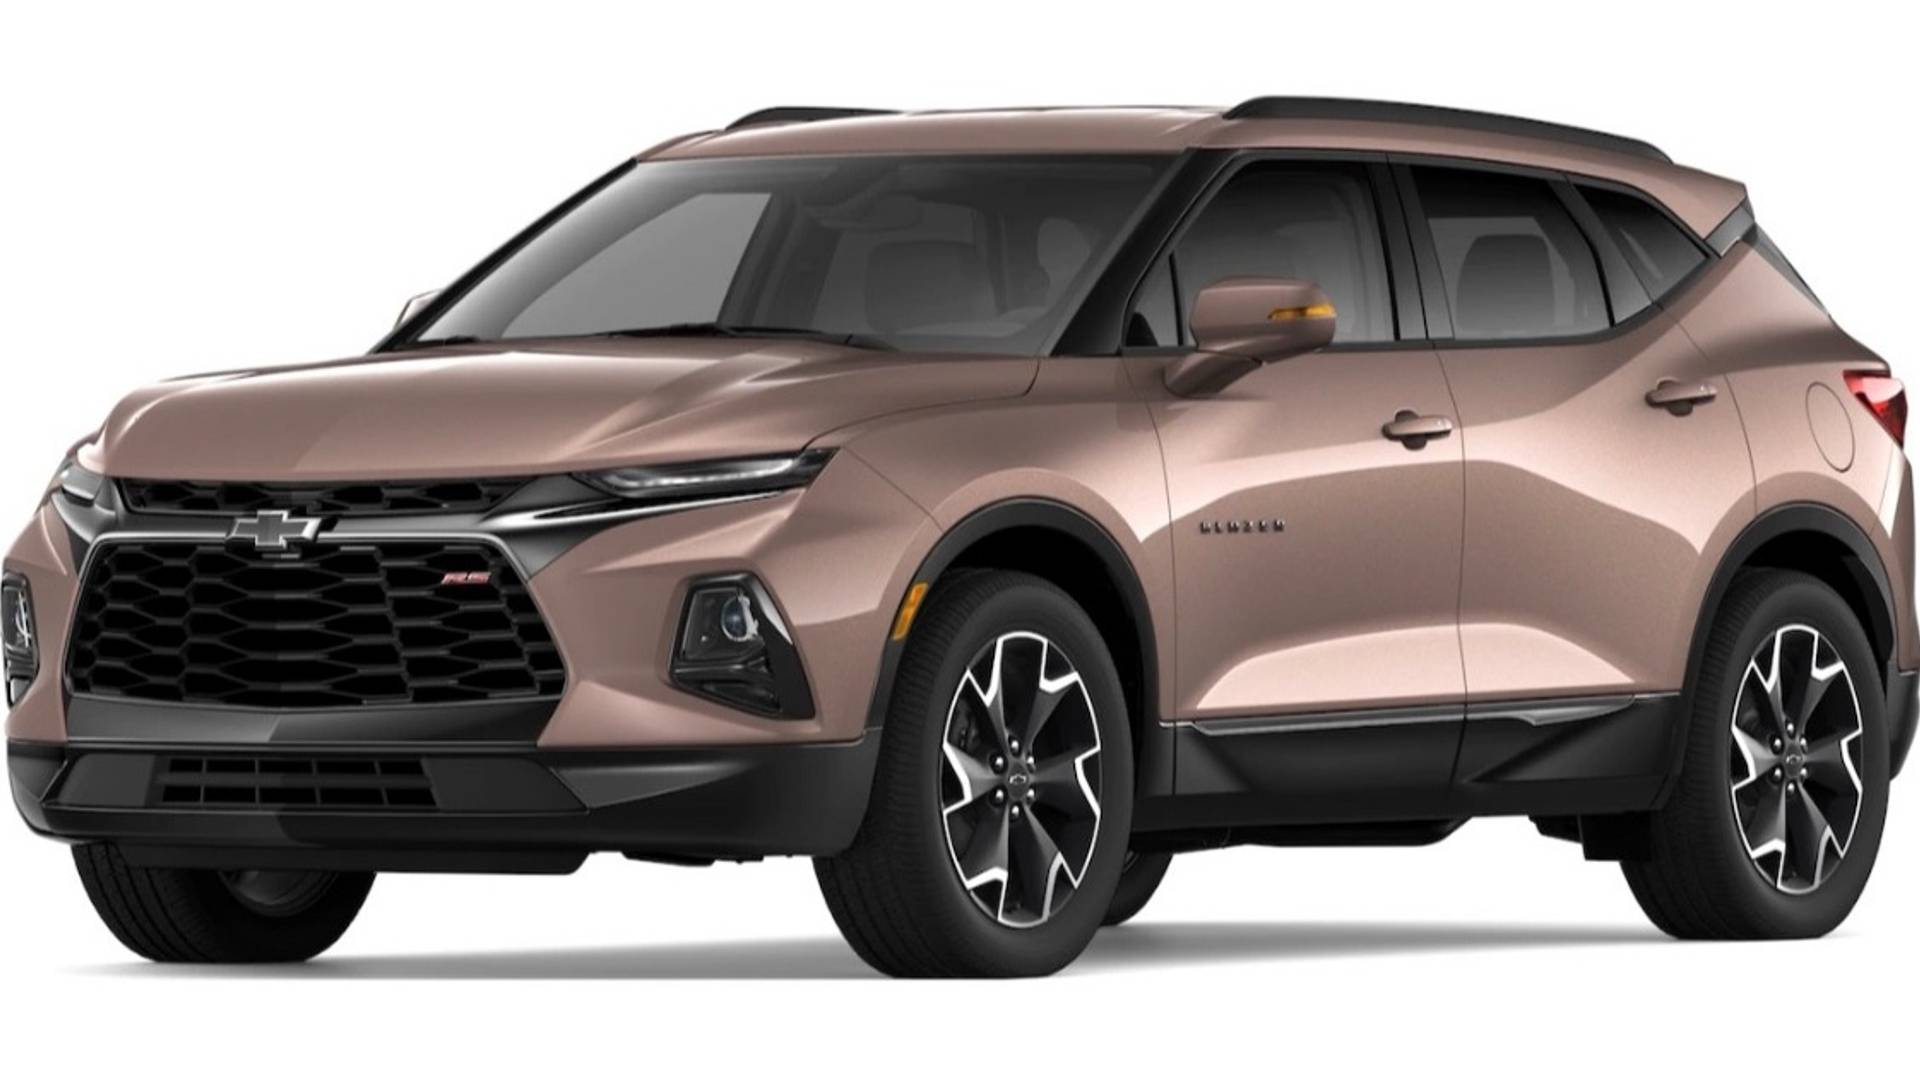 You Can Buy A Rose Gold Chevy Blazer To Match Your Iphone